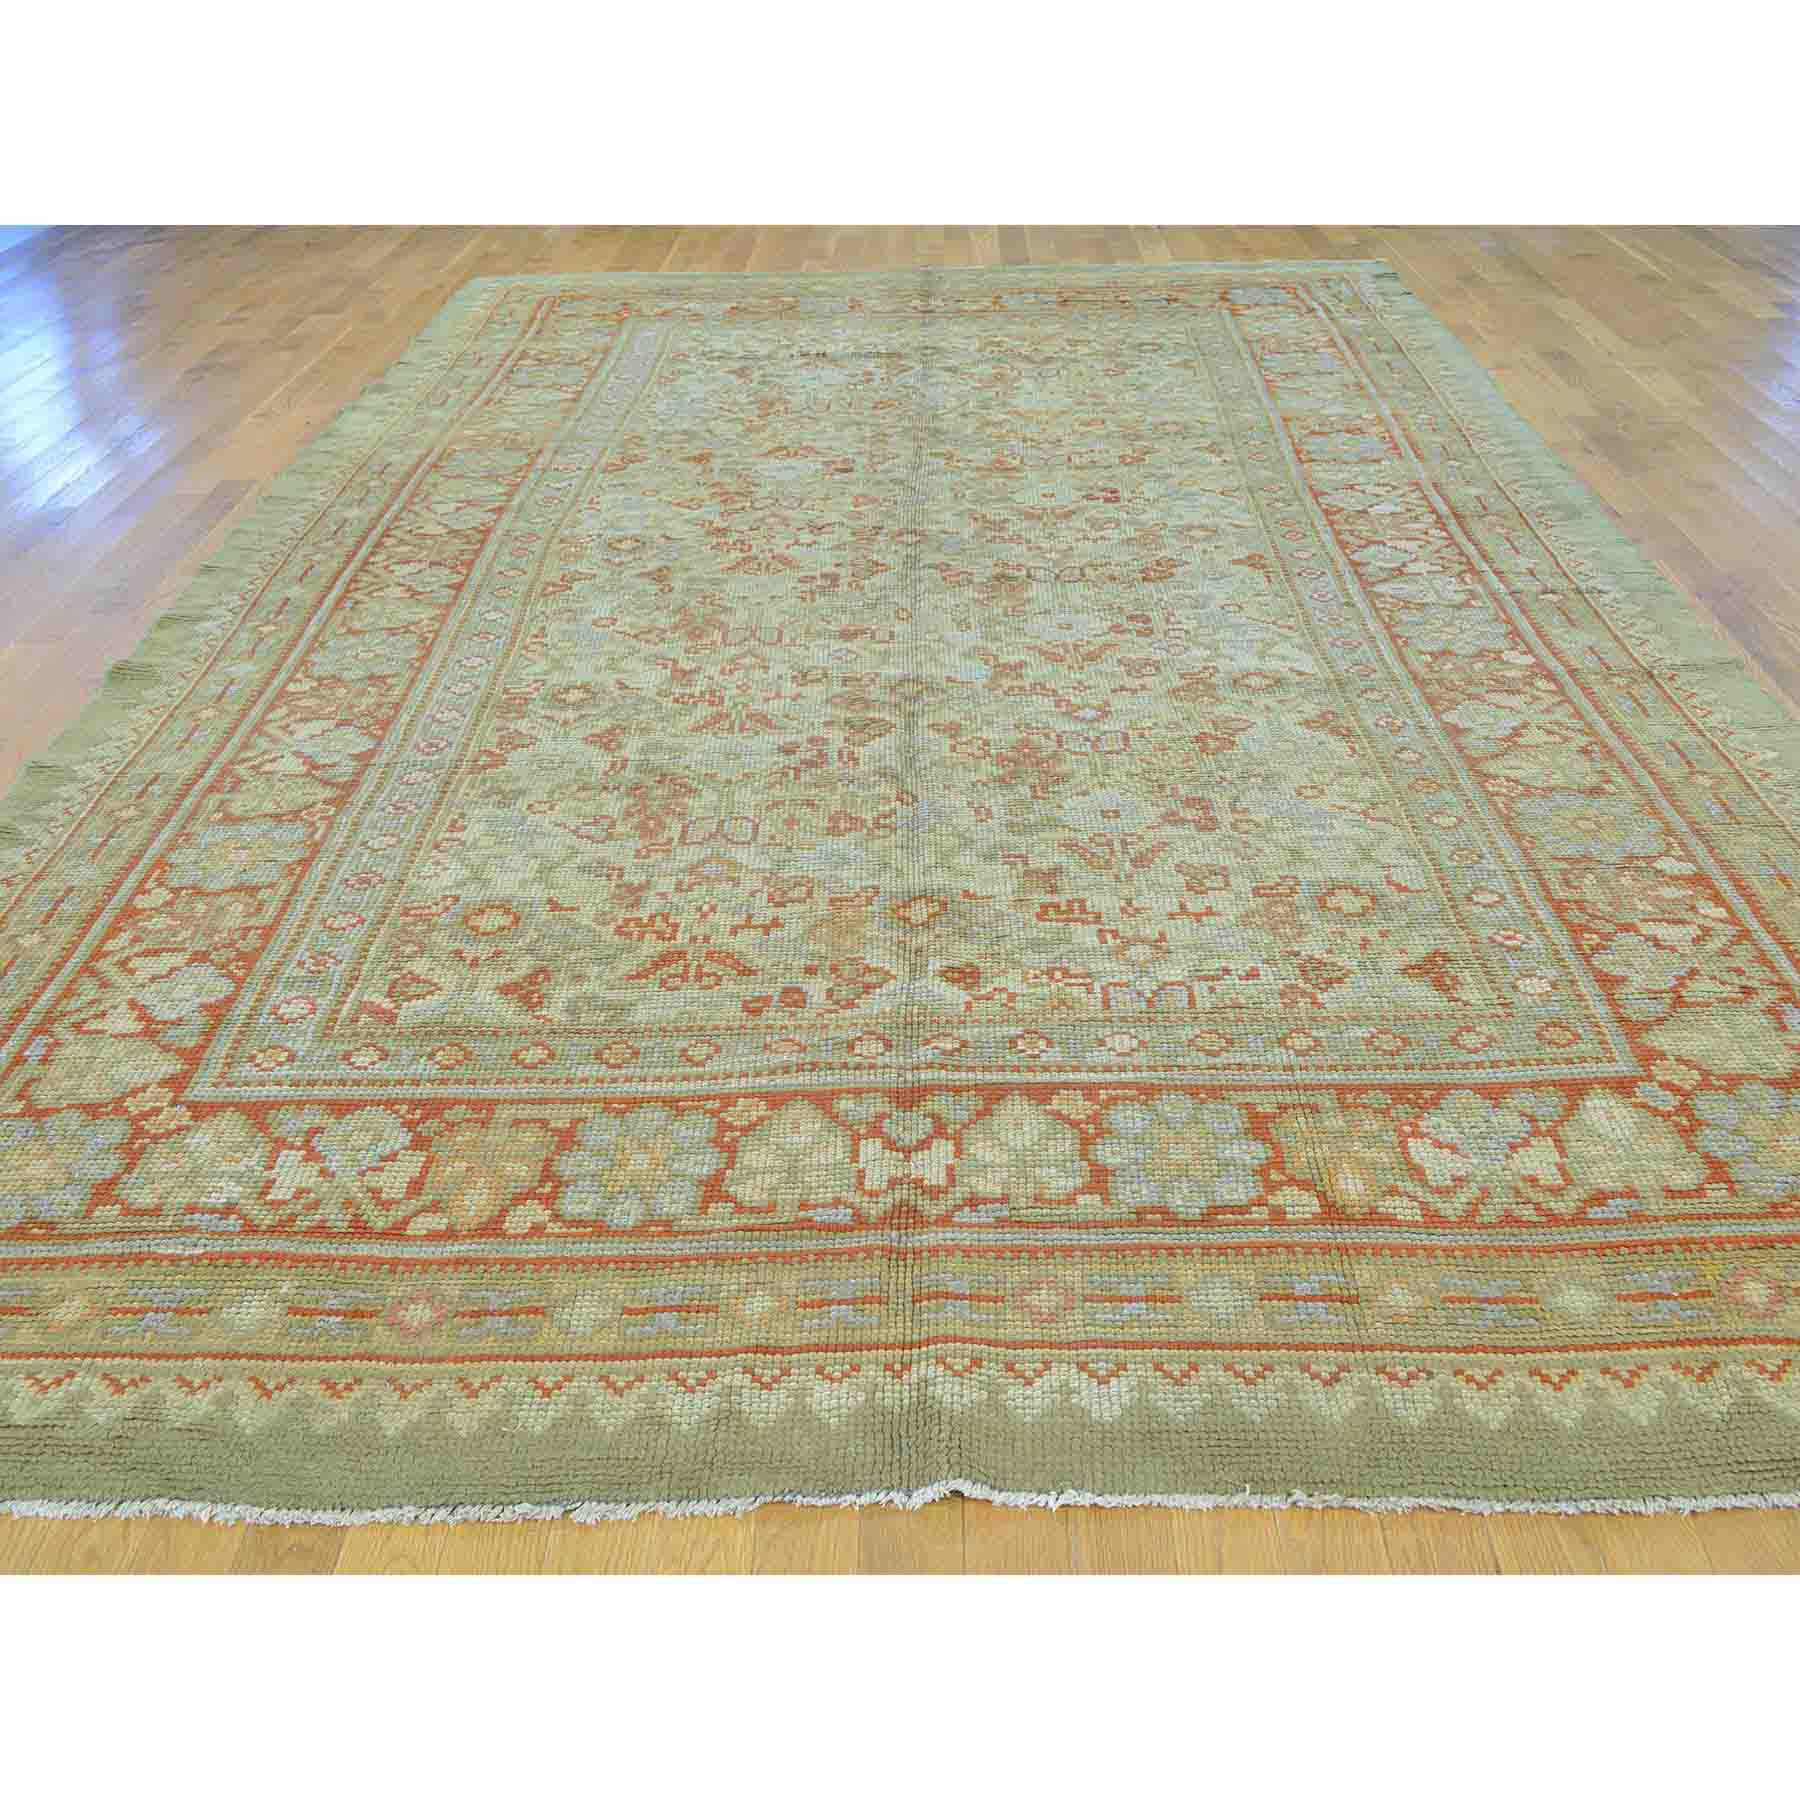 Antique-Hand-Knotted-Rug-133125